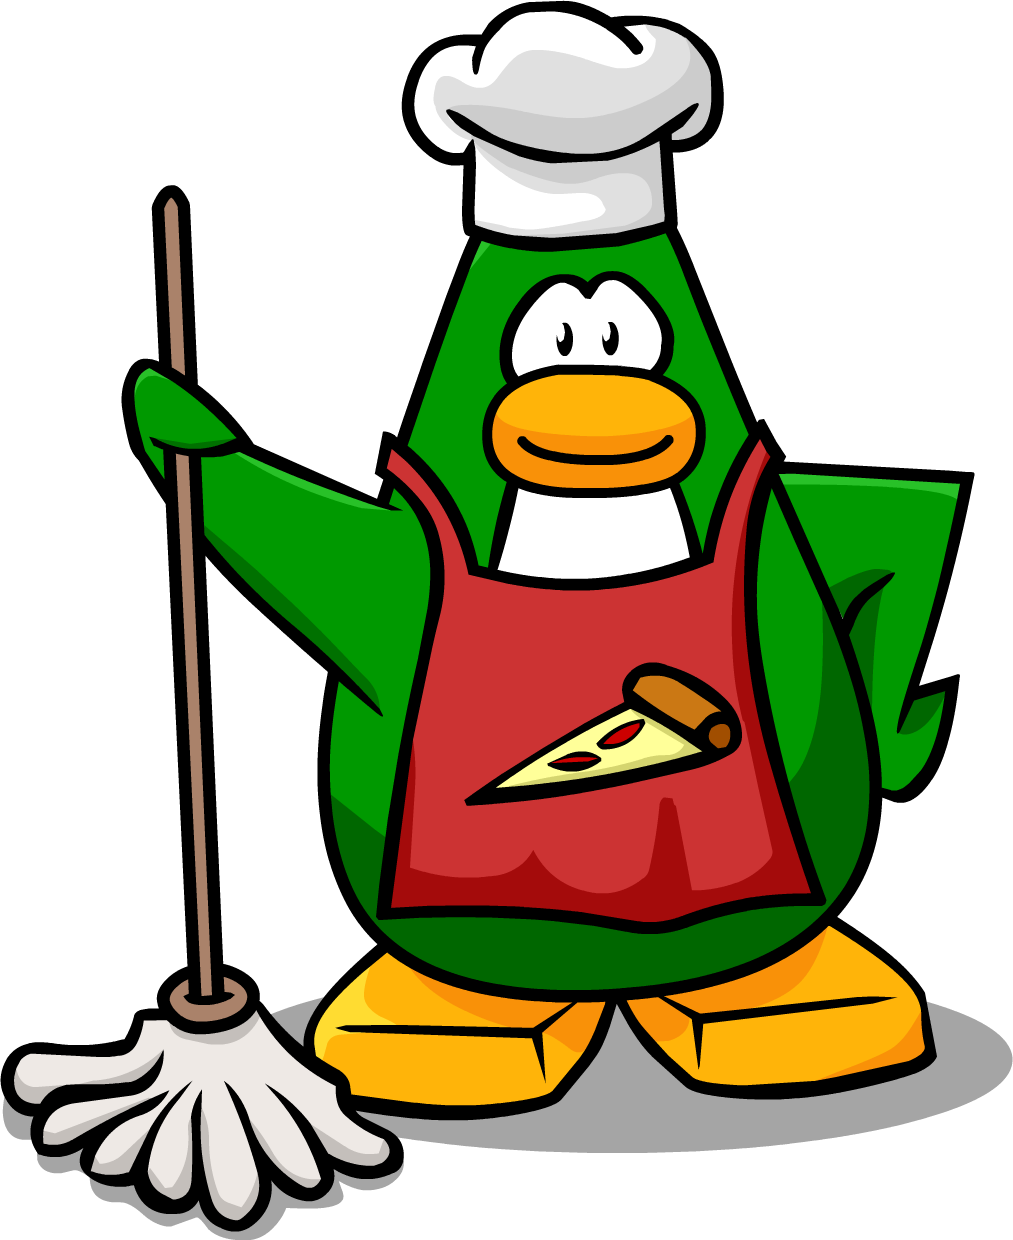 Pizza chef png. Image mission club penguin